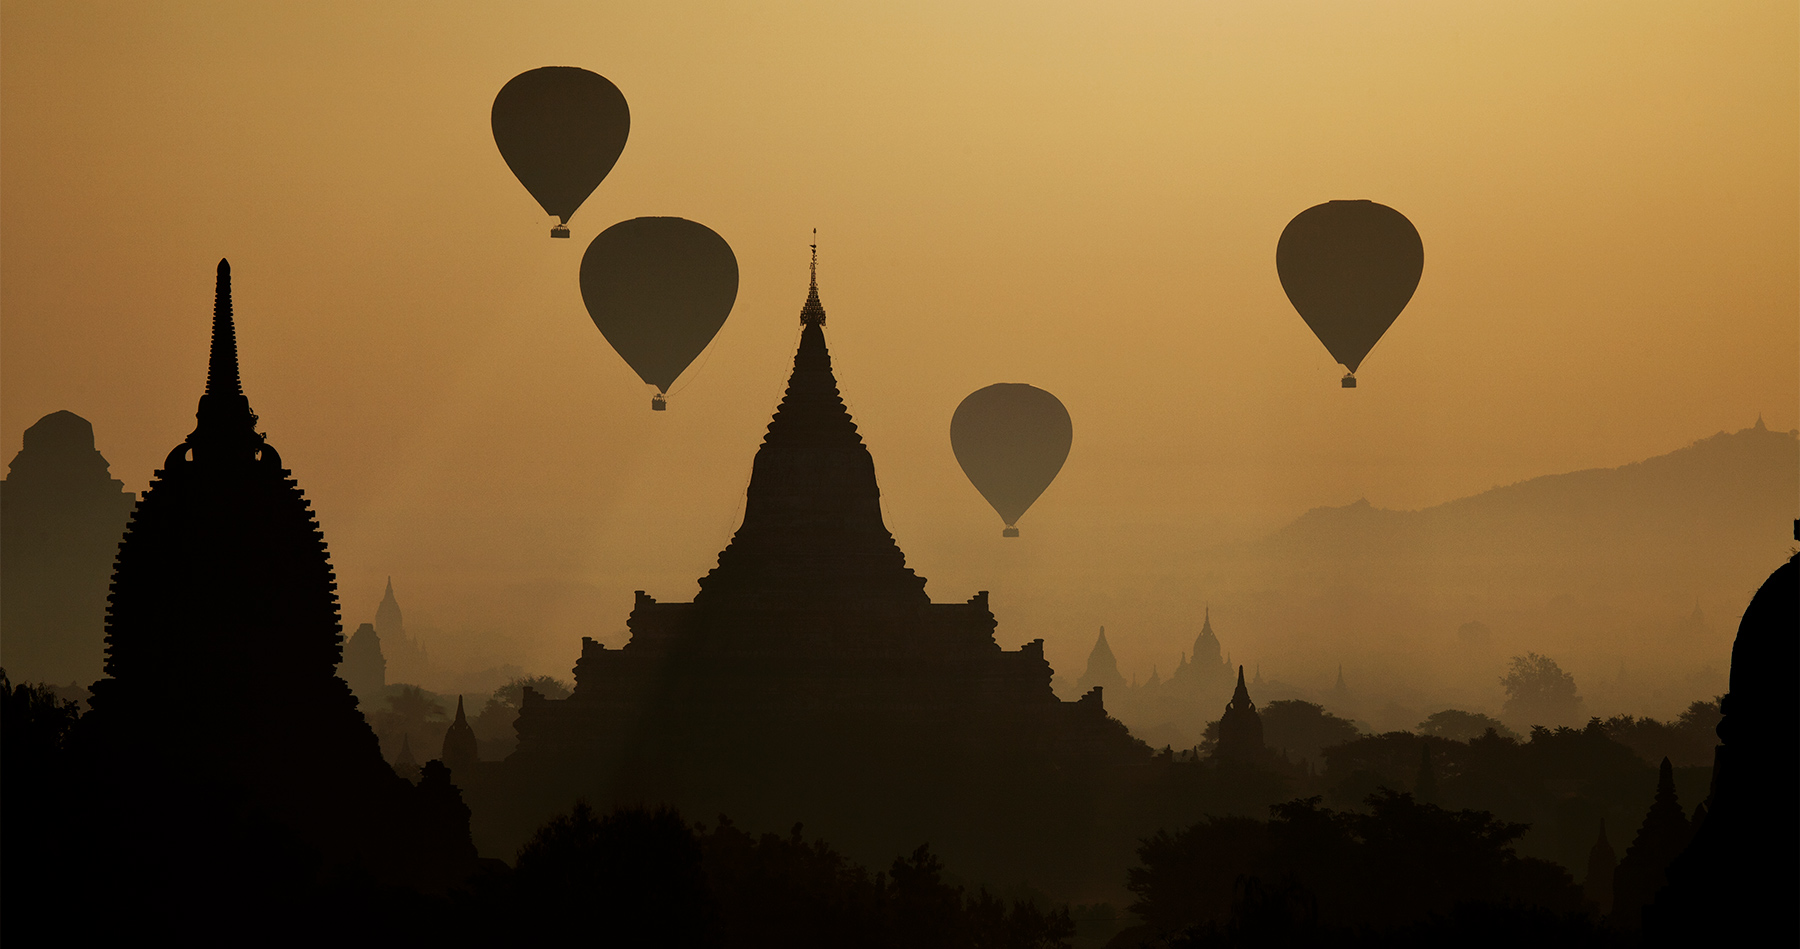 balloons_over_bagan_burma_cool